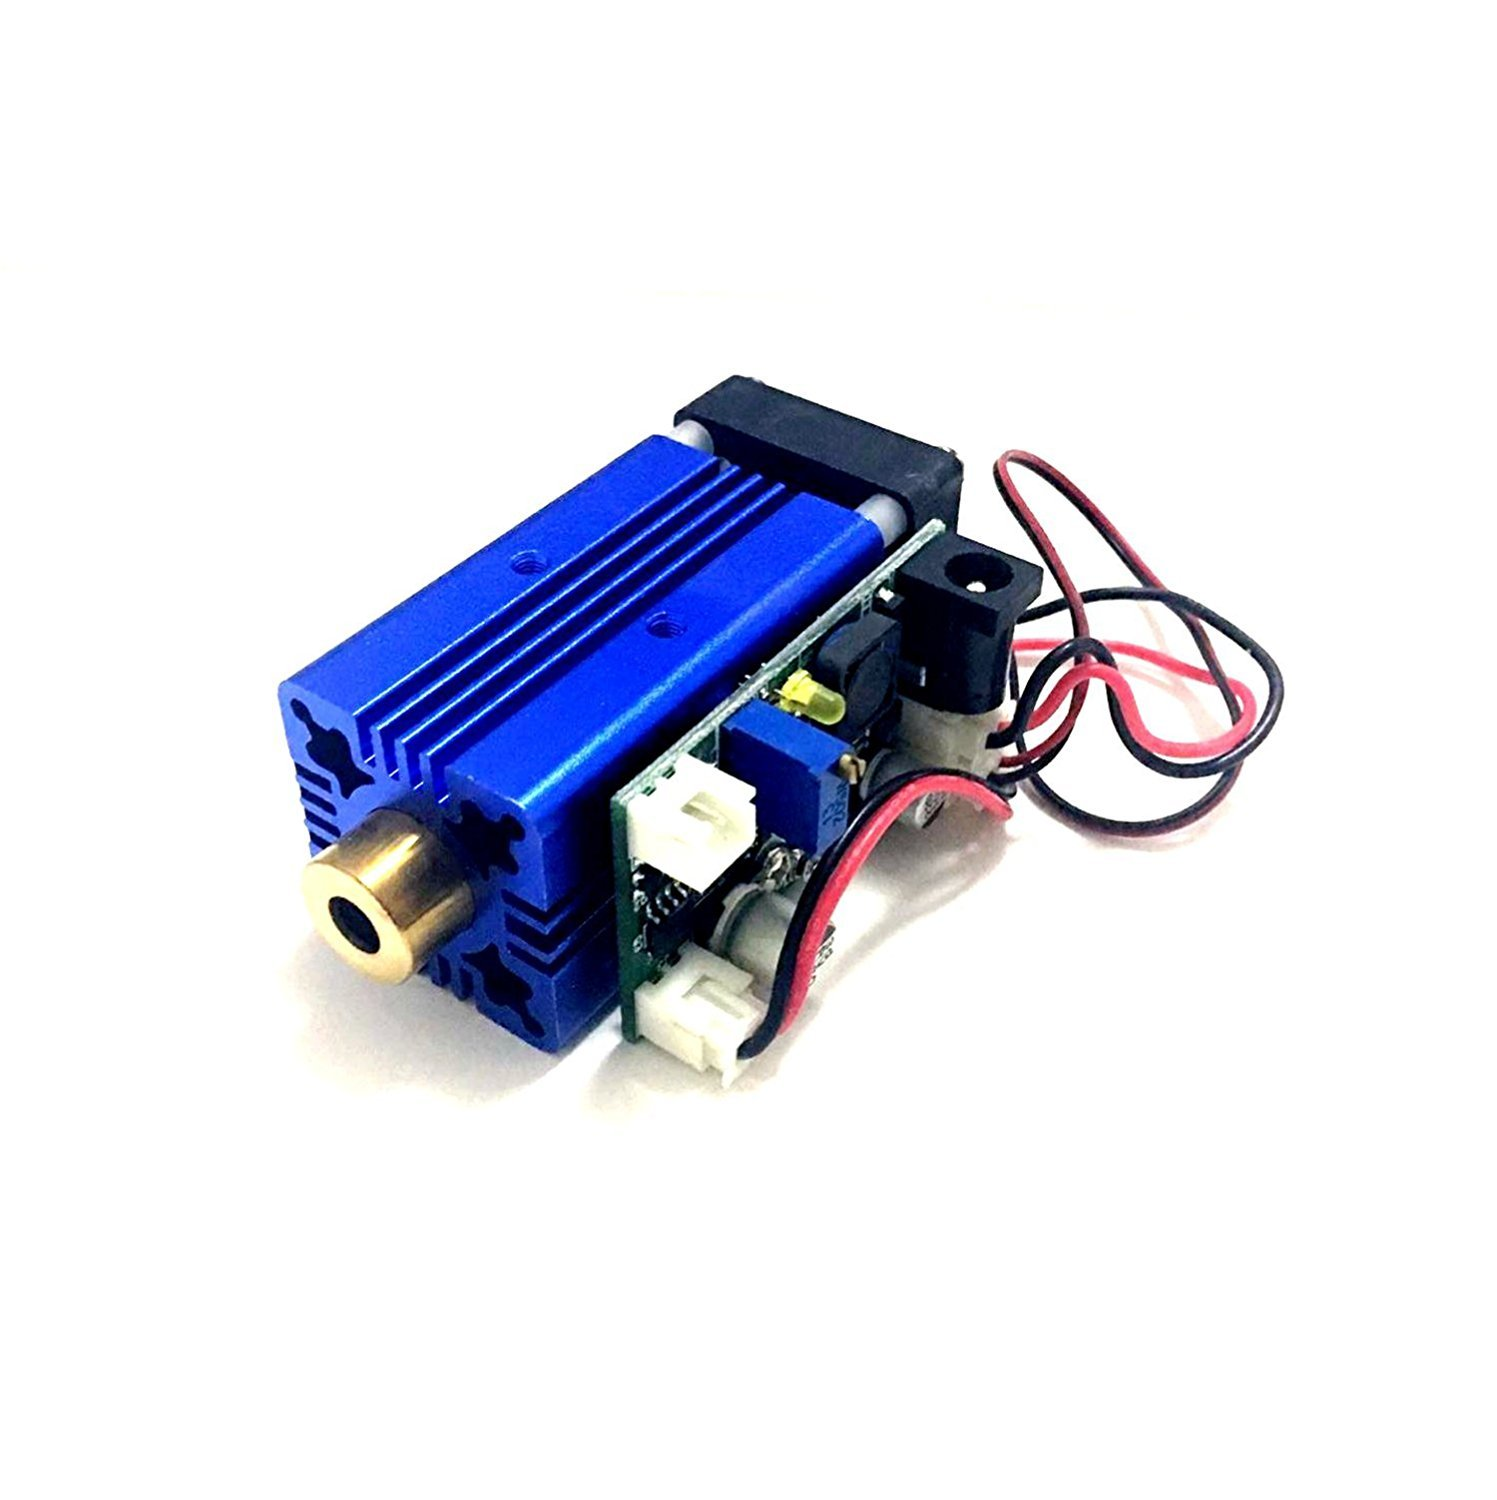 450nm 1000mw 1w High Power Pure Blue Laser Diode Dot Module 12V TTL + Fan Cooling + Long Working